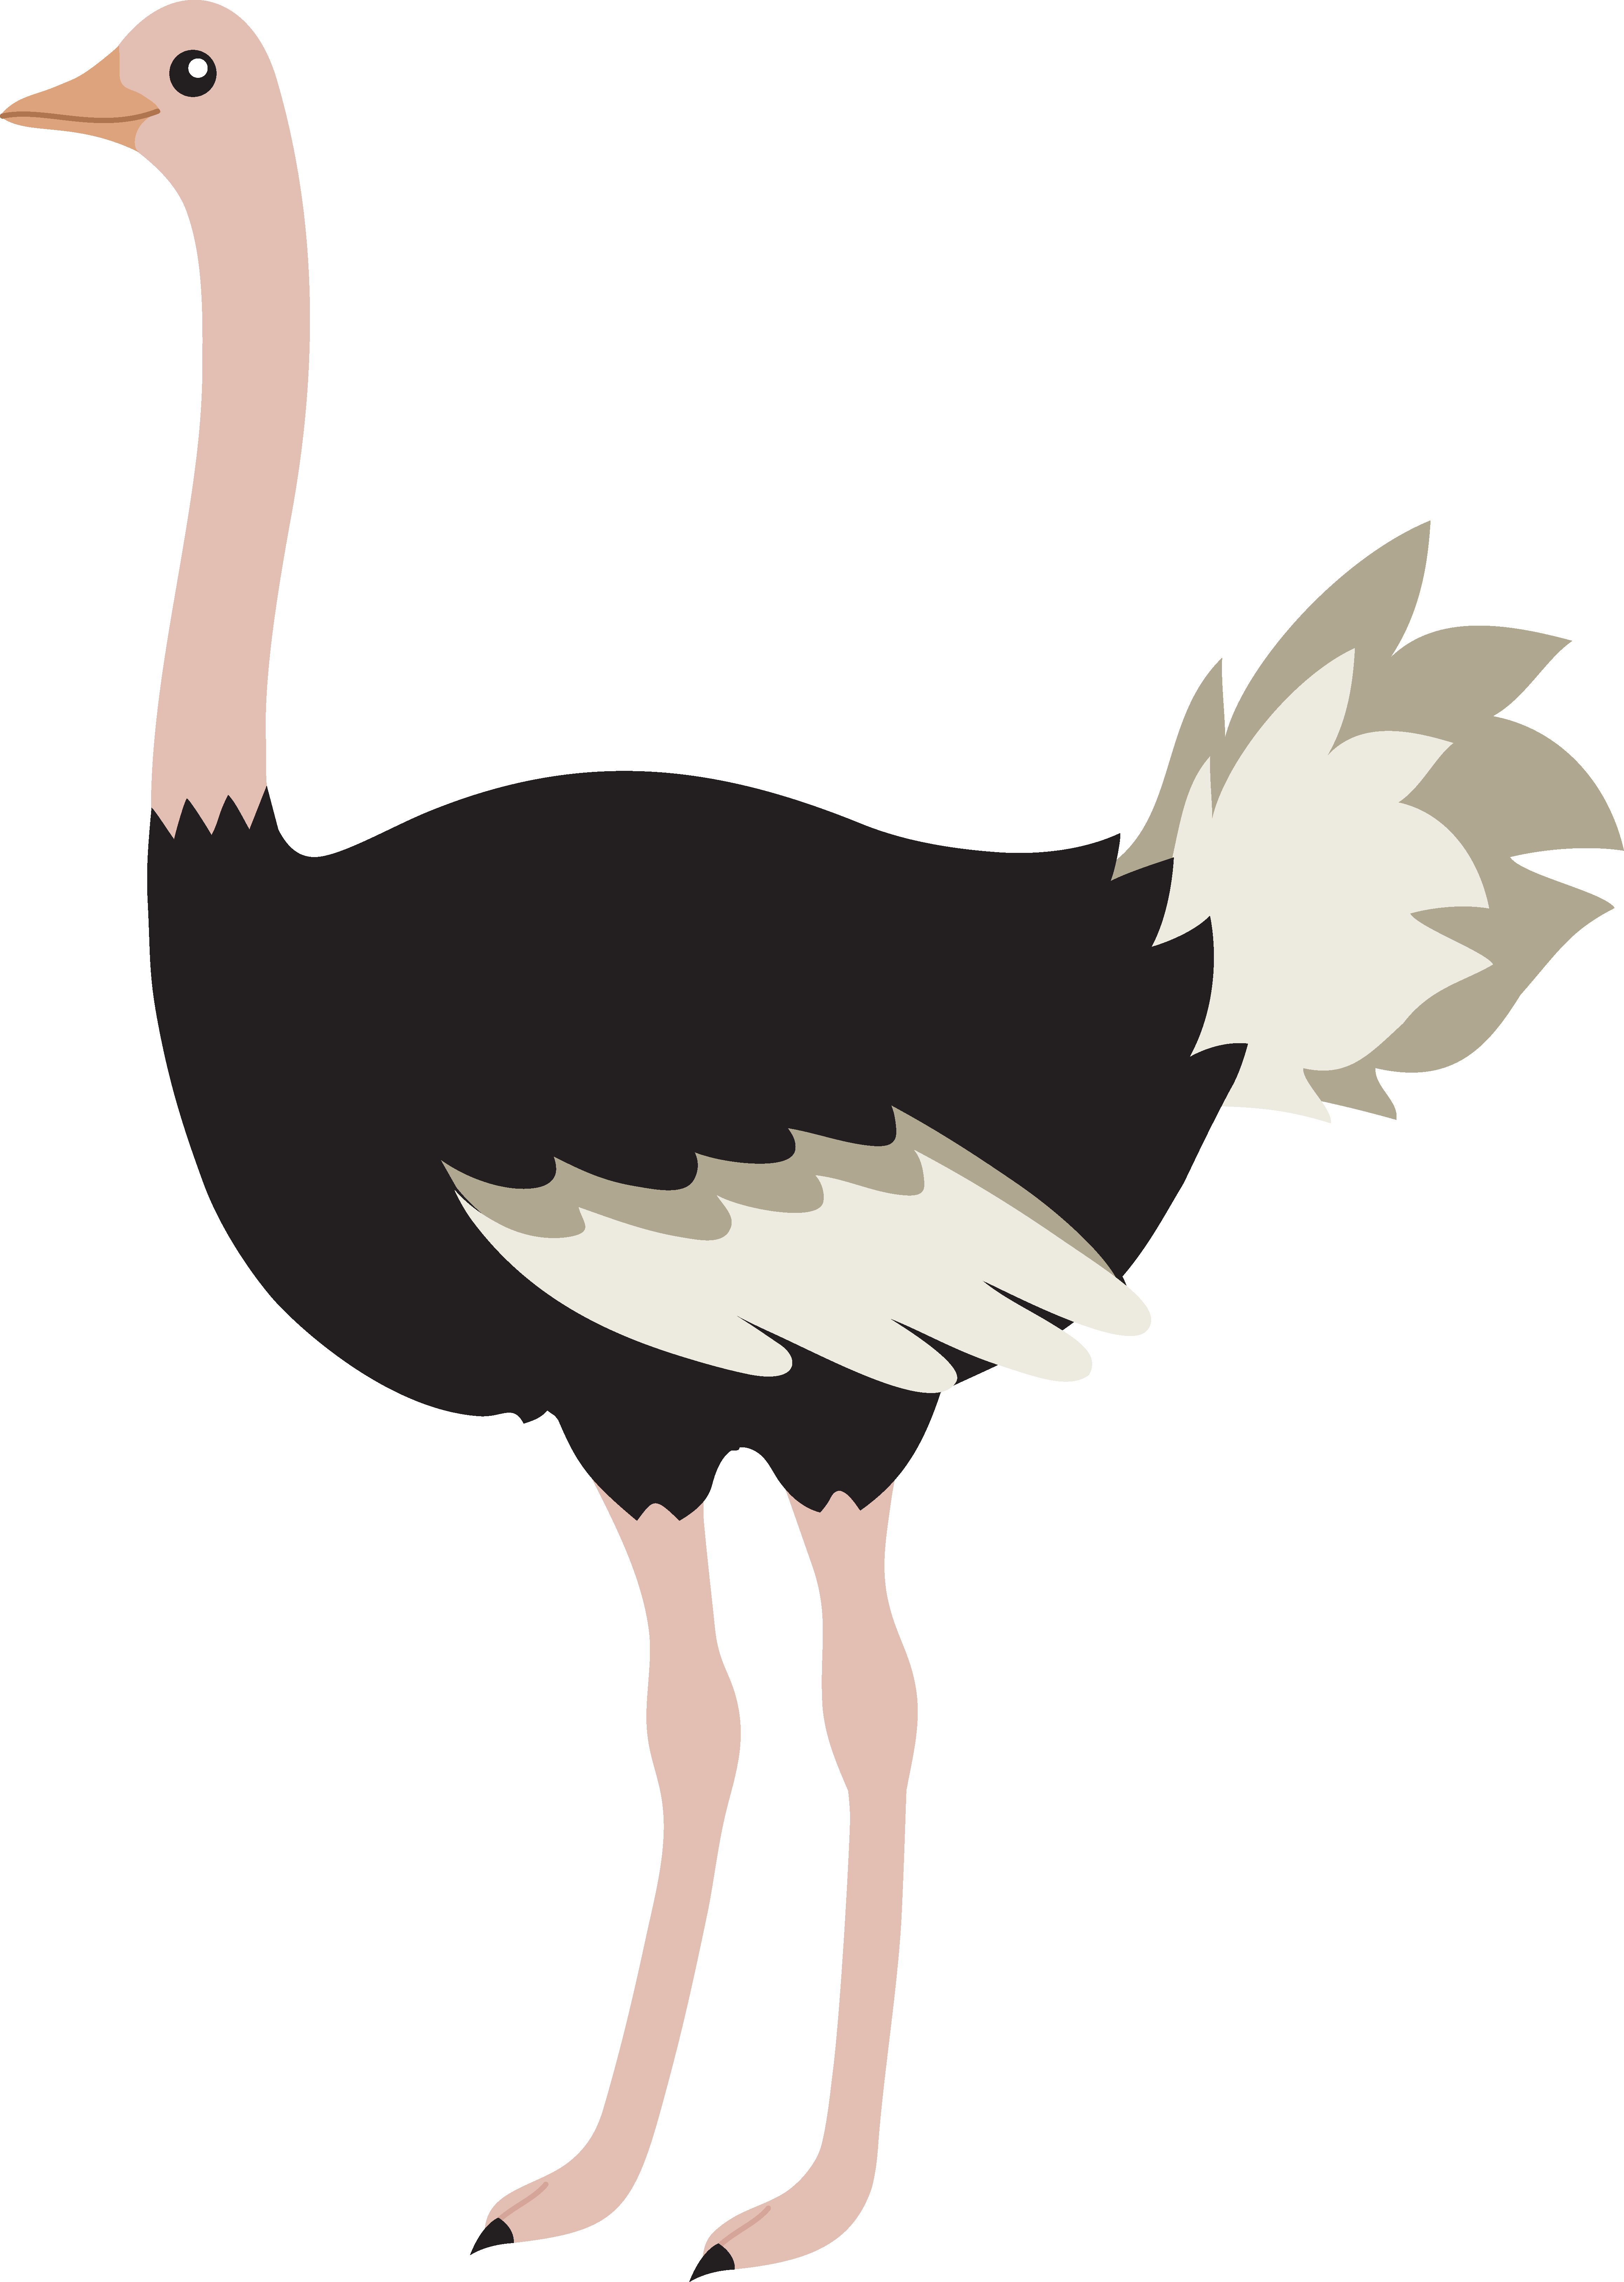 clipart royalty free download Cute Cartoon Ostrich Images